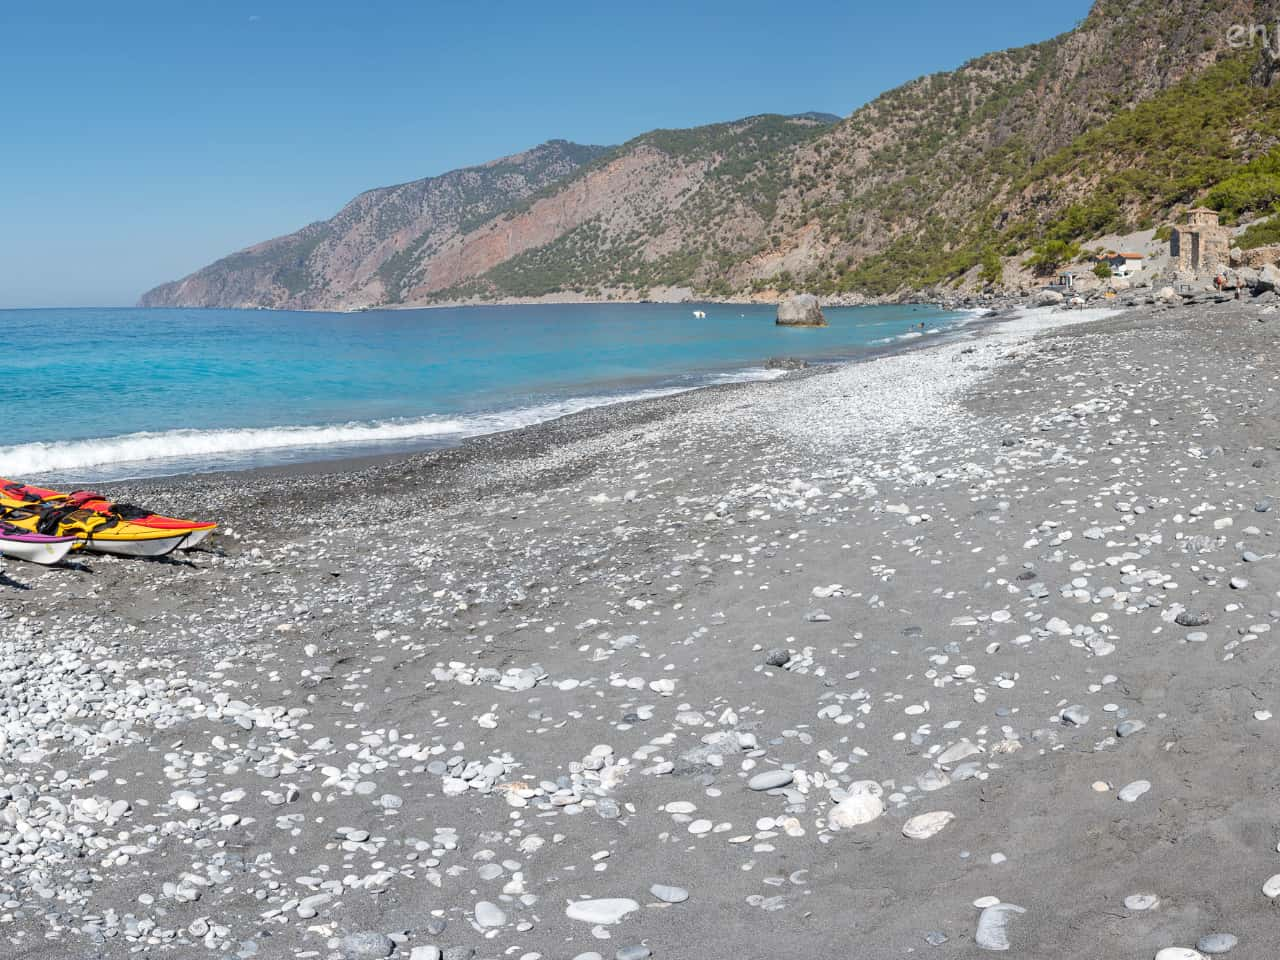 7 Days Sea Kayak Trip Western Crete, activities crete, activities chania crete, sougia village, loutro village, sfakia village, loutro village, marmara beach, agia roumeli village, samaria gorge, aradena gorge, best things to do crete